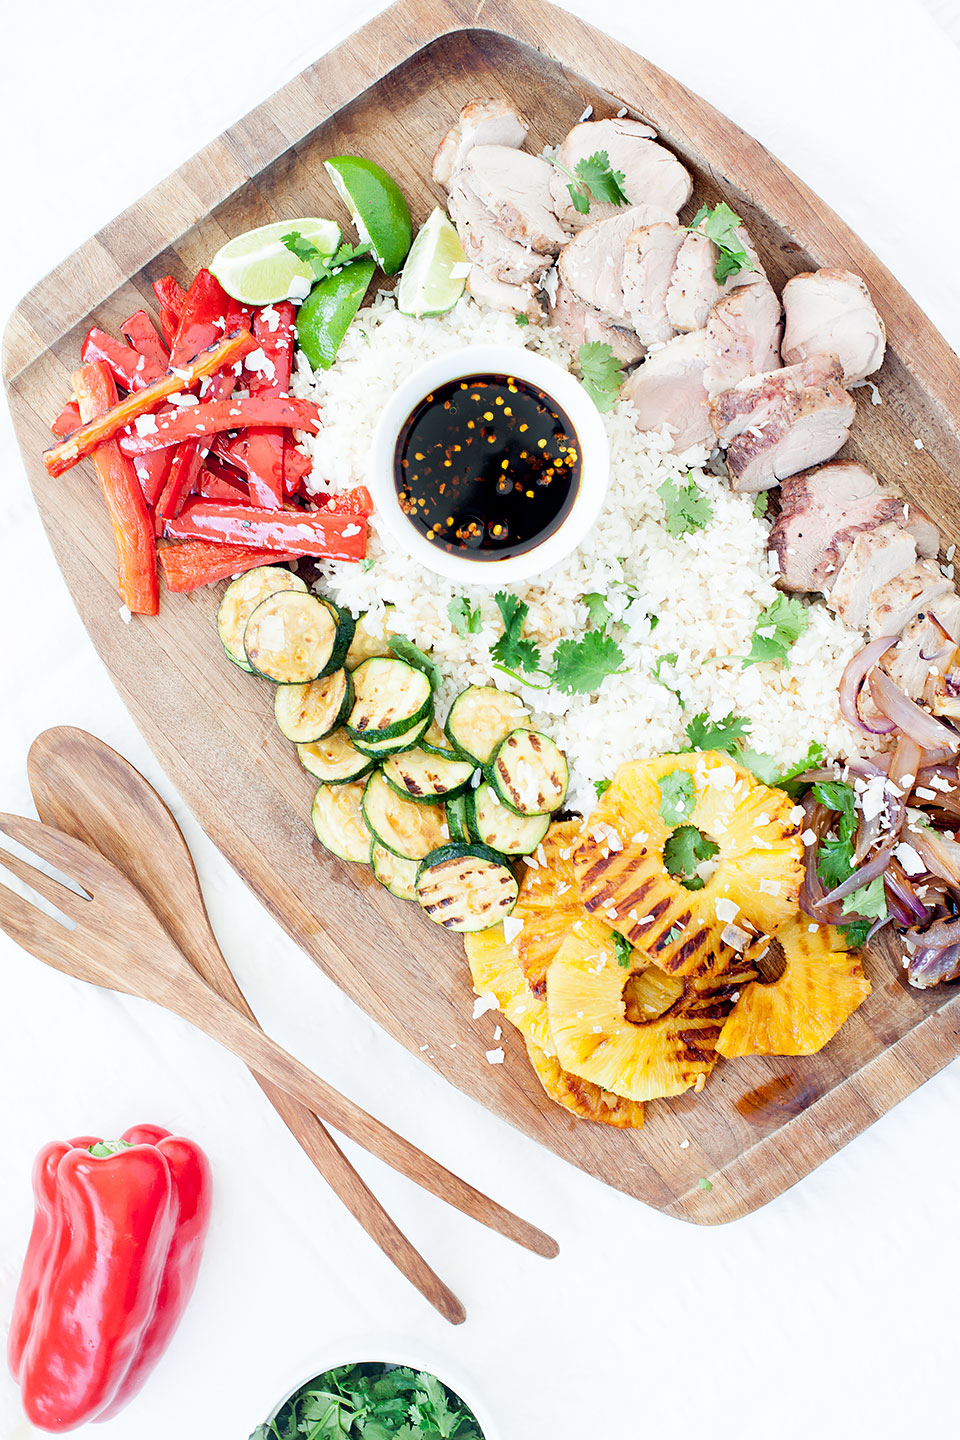 Hawaiian Pork Bowls with Coconut Sticky Rice | Gluten-free and paleo friendly. | Loveleaf Co.